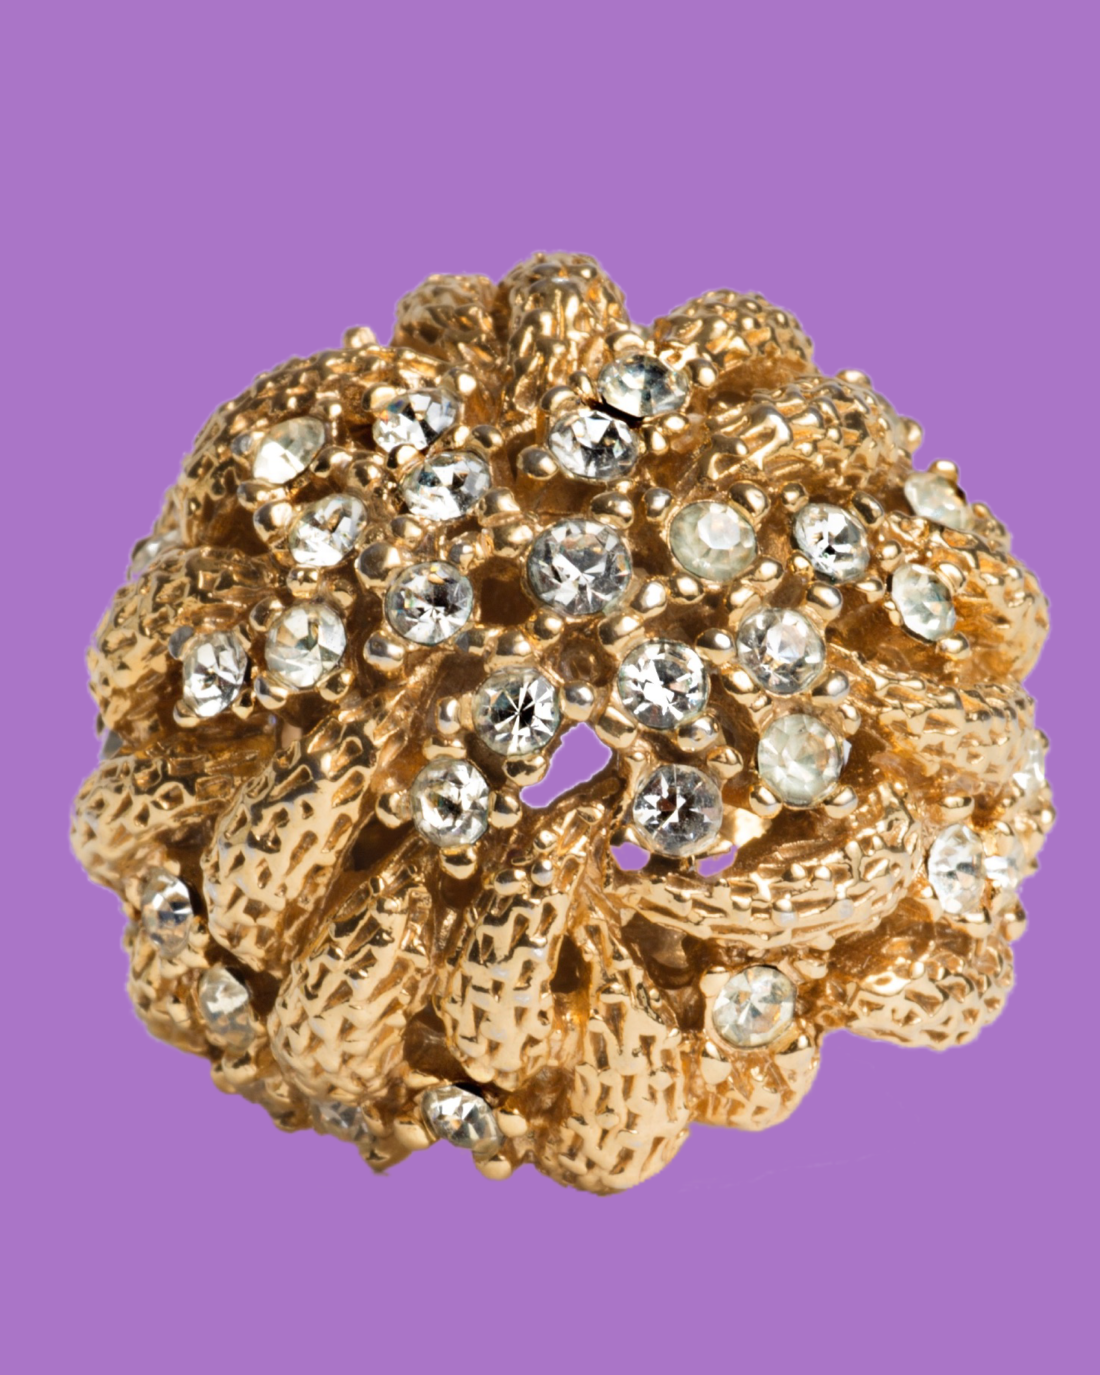 Vintage Gold and Rhinestone Holy Cluster Fabulous Cocktail Ring, circa 1950's